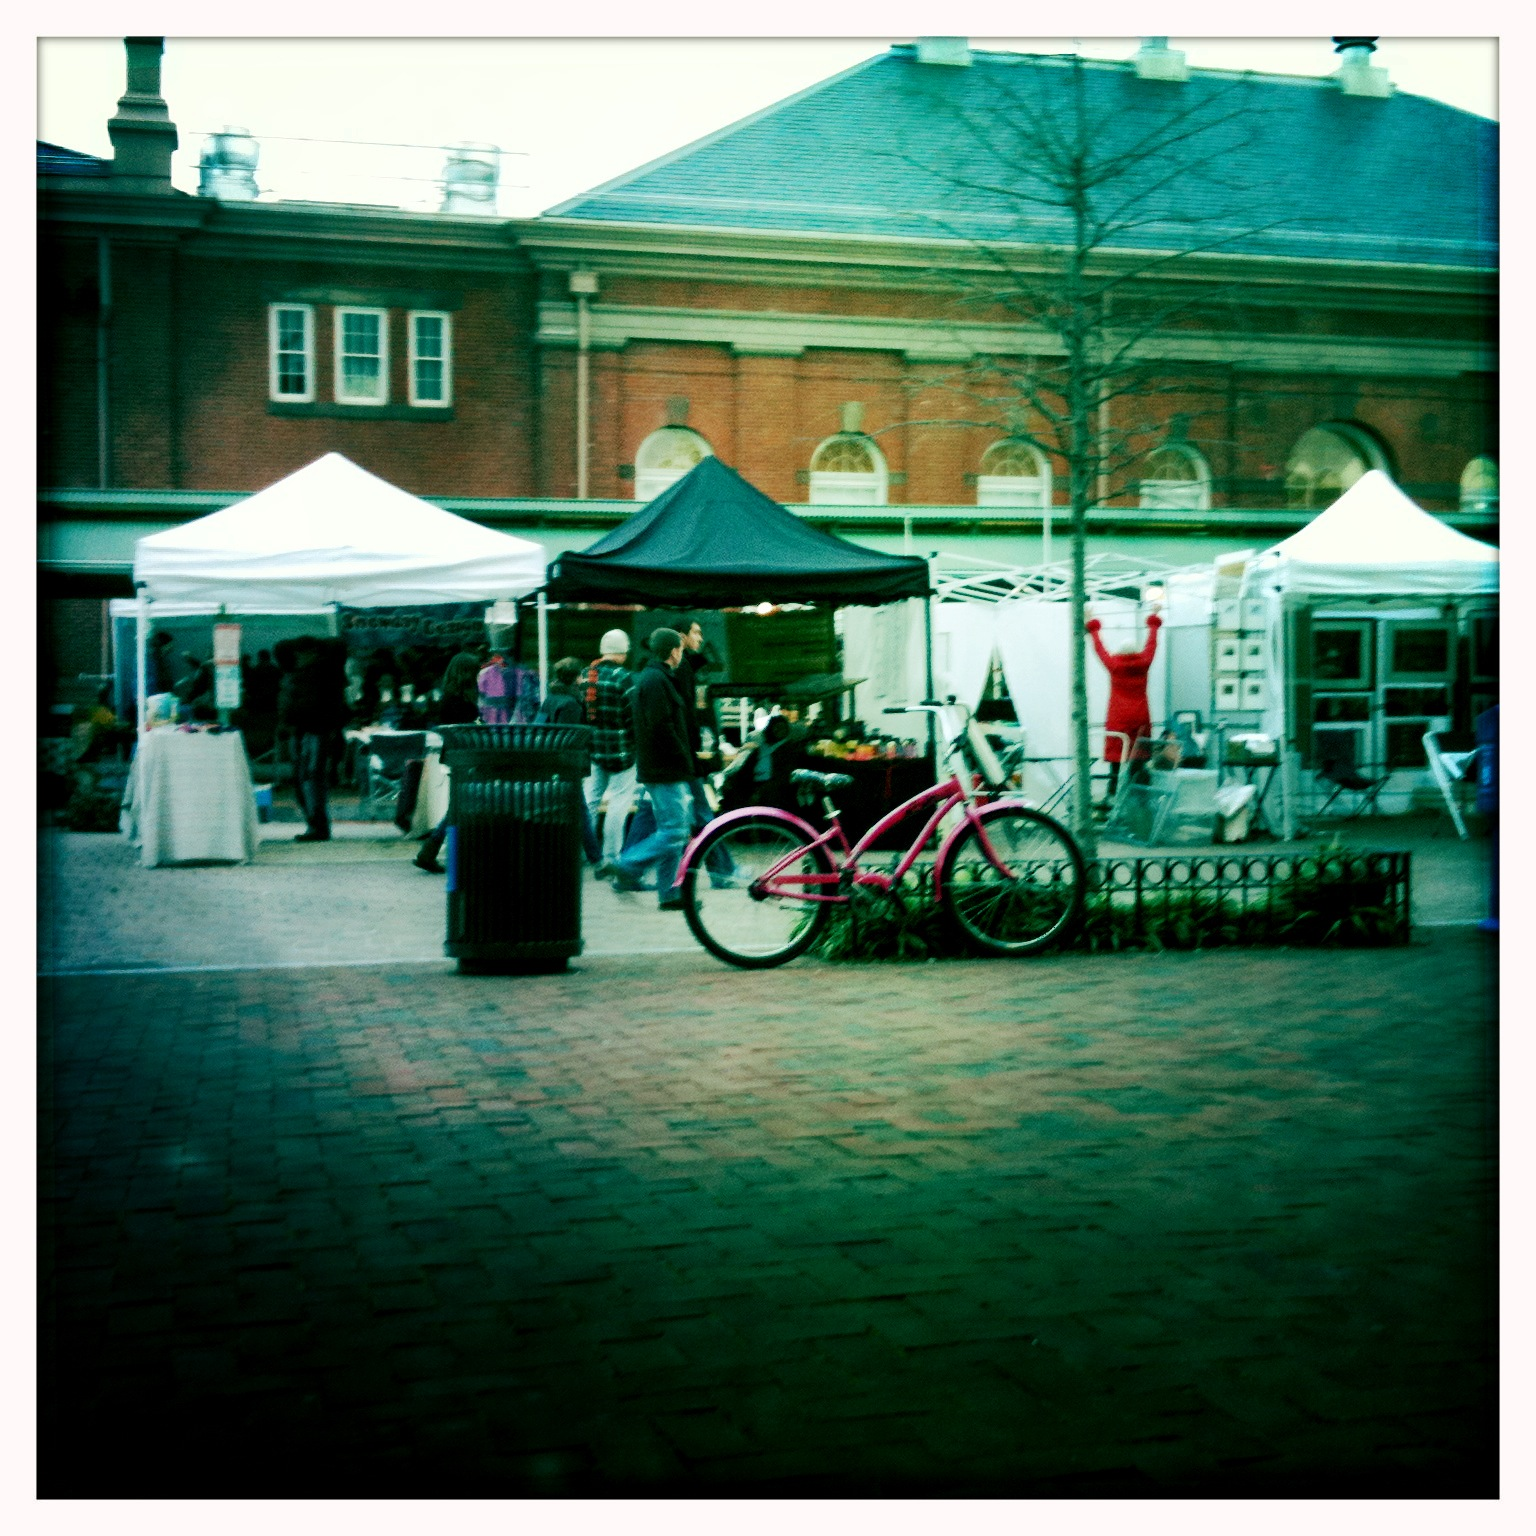 Eastern Market, Washington, DC, December 2011